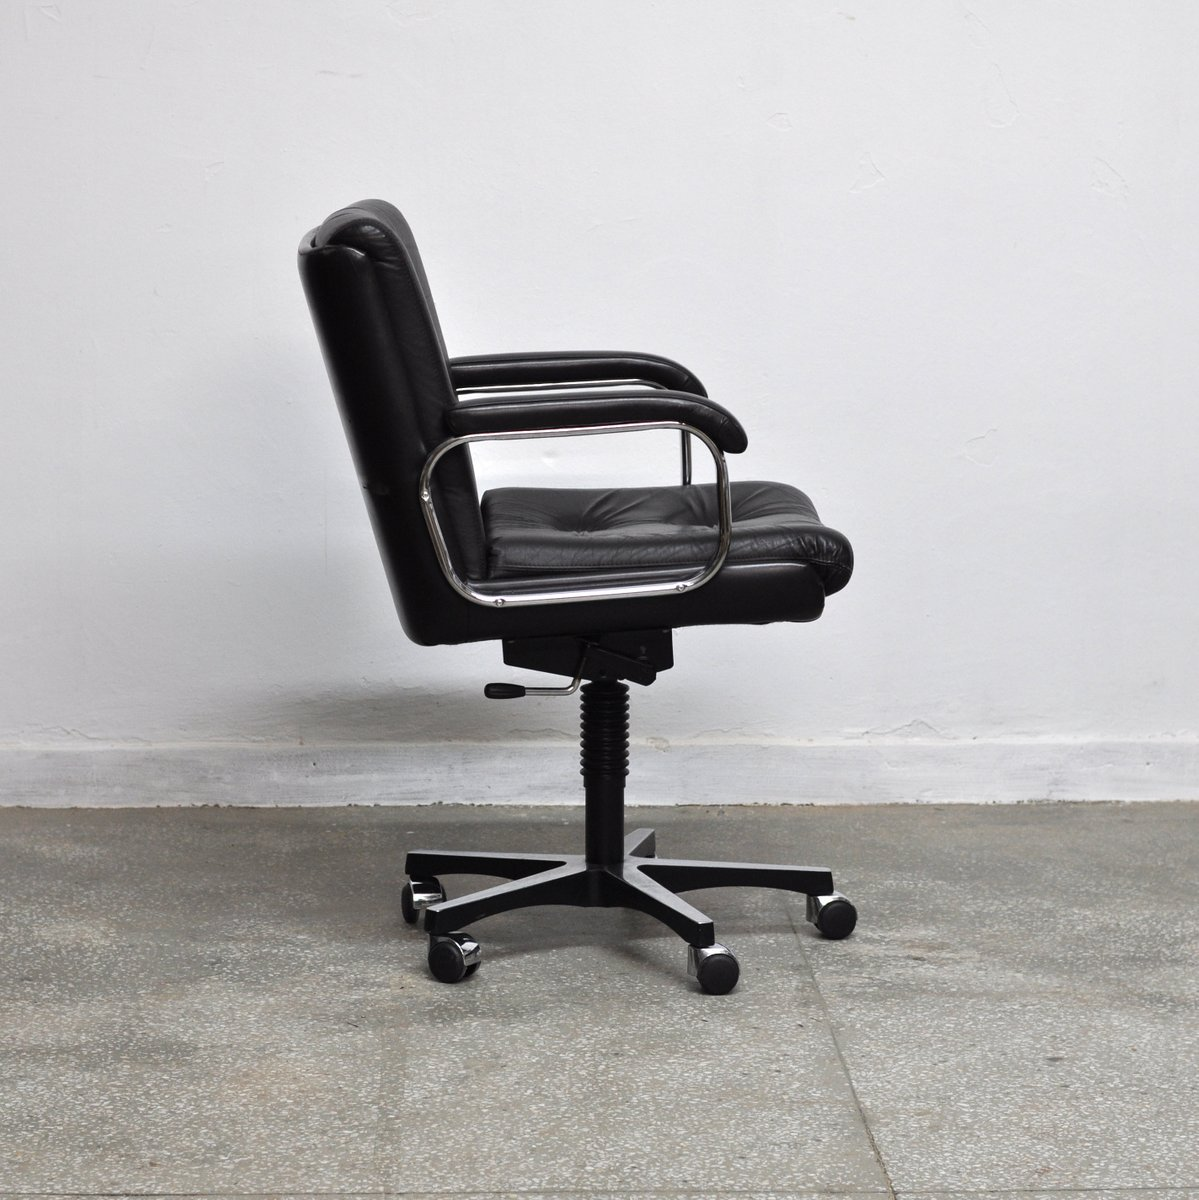 norwegian vintage office chair. Vintage Norwegian Office Chair From Ring Mekanikk 9. Price: $2,351.00 Regular $2,609.00